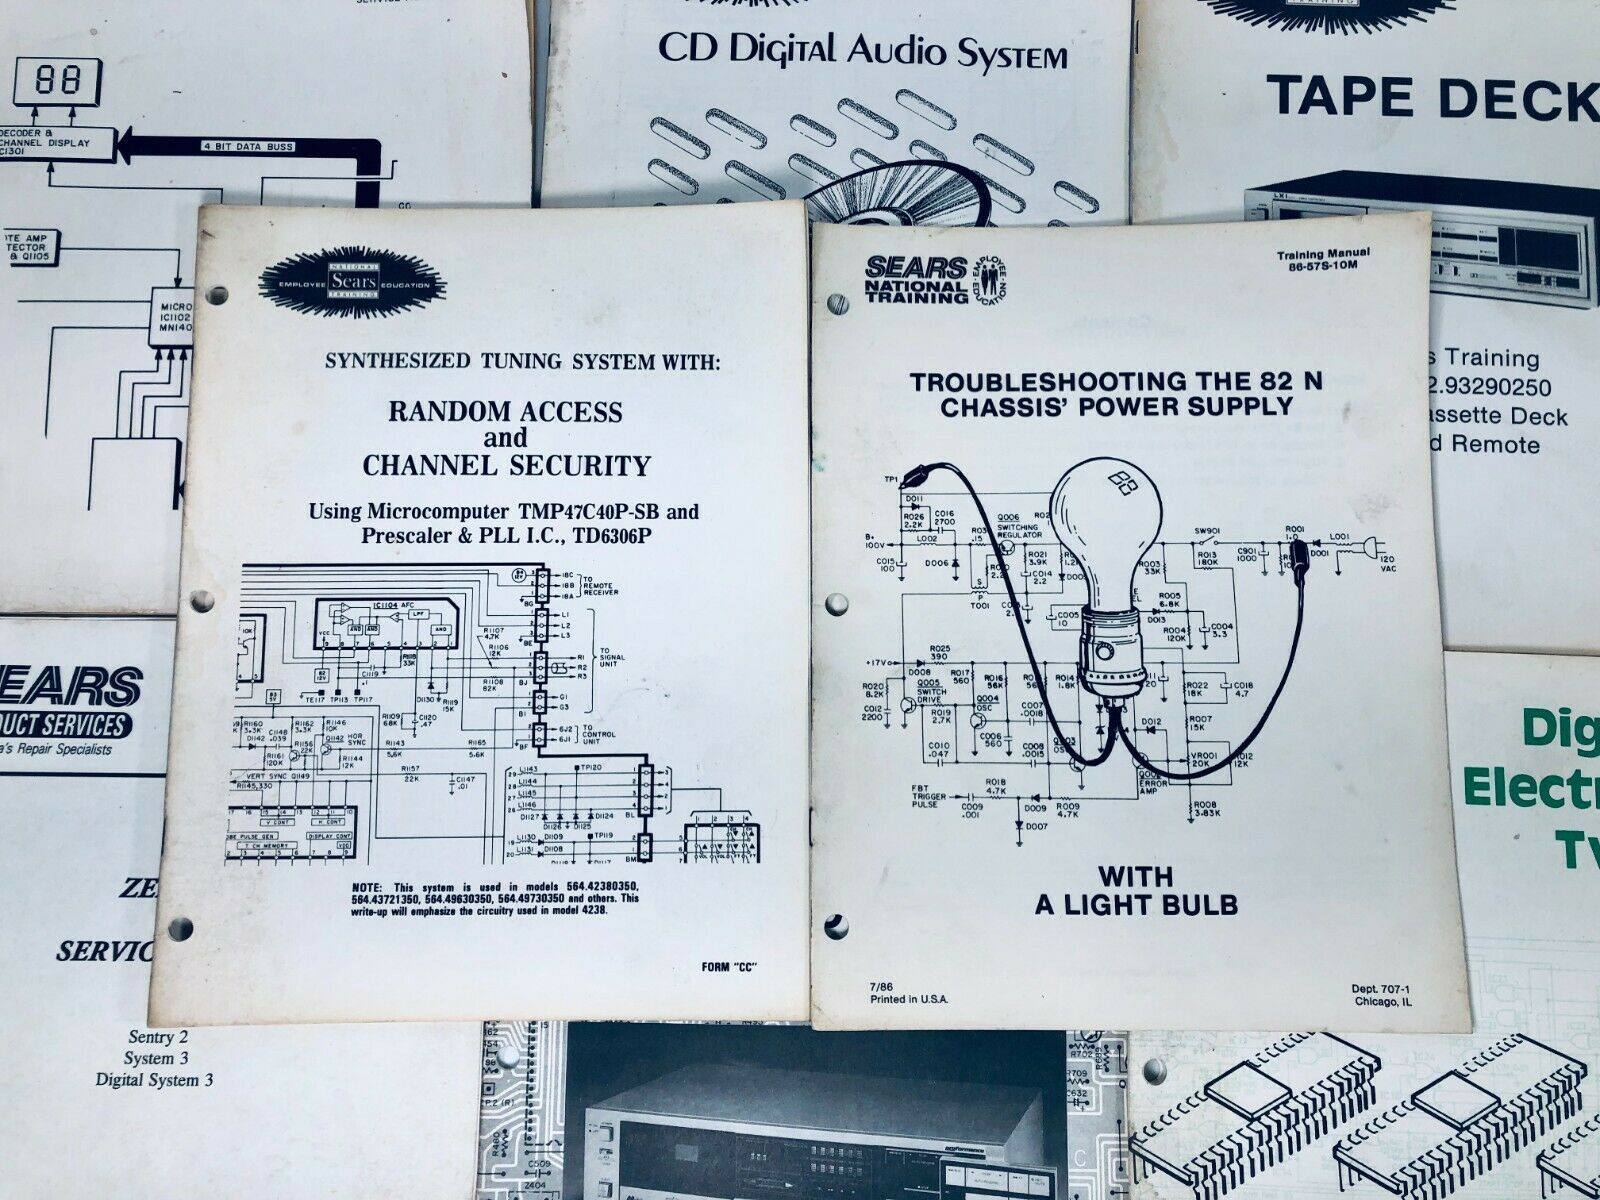 Sears Zenith Service Menus - Electronic Tuning Systems Employee Service Manuals - $29.65